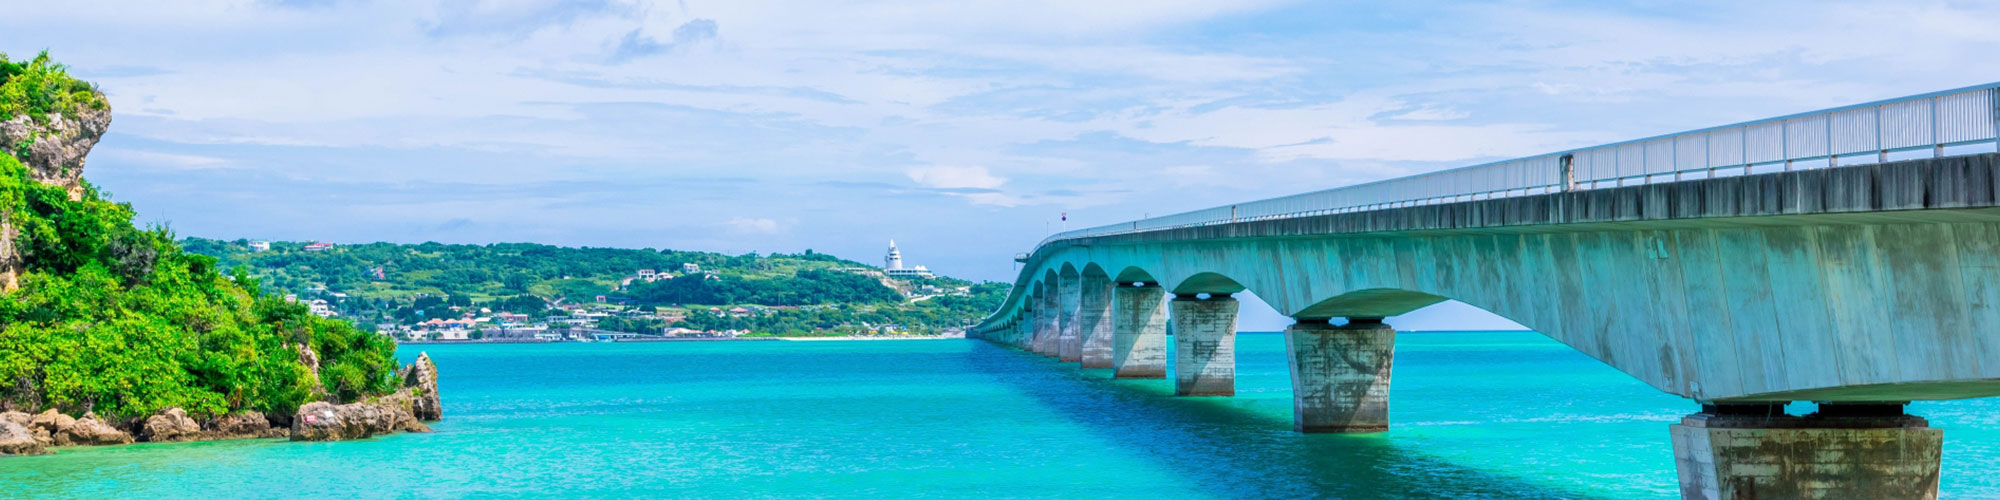 Okinawa Foreigners Caregiver Project Cooperative Association